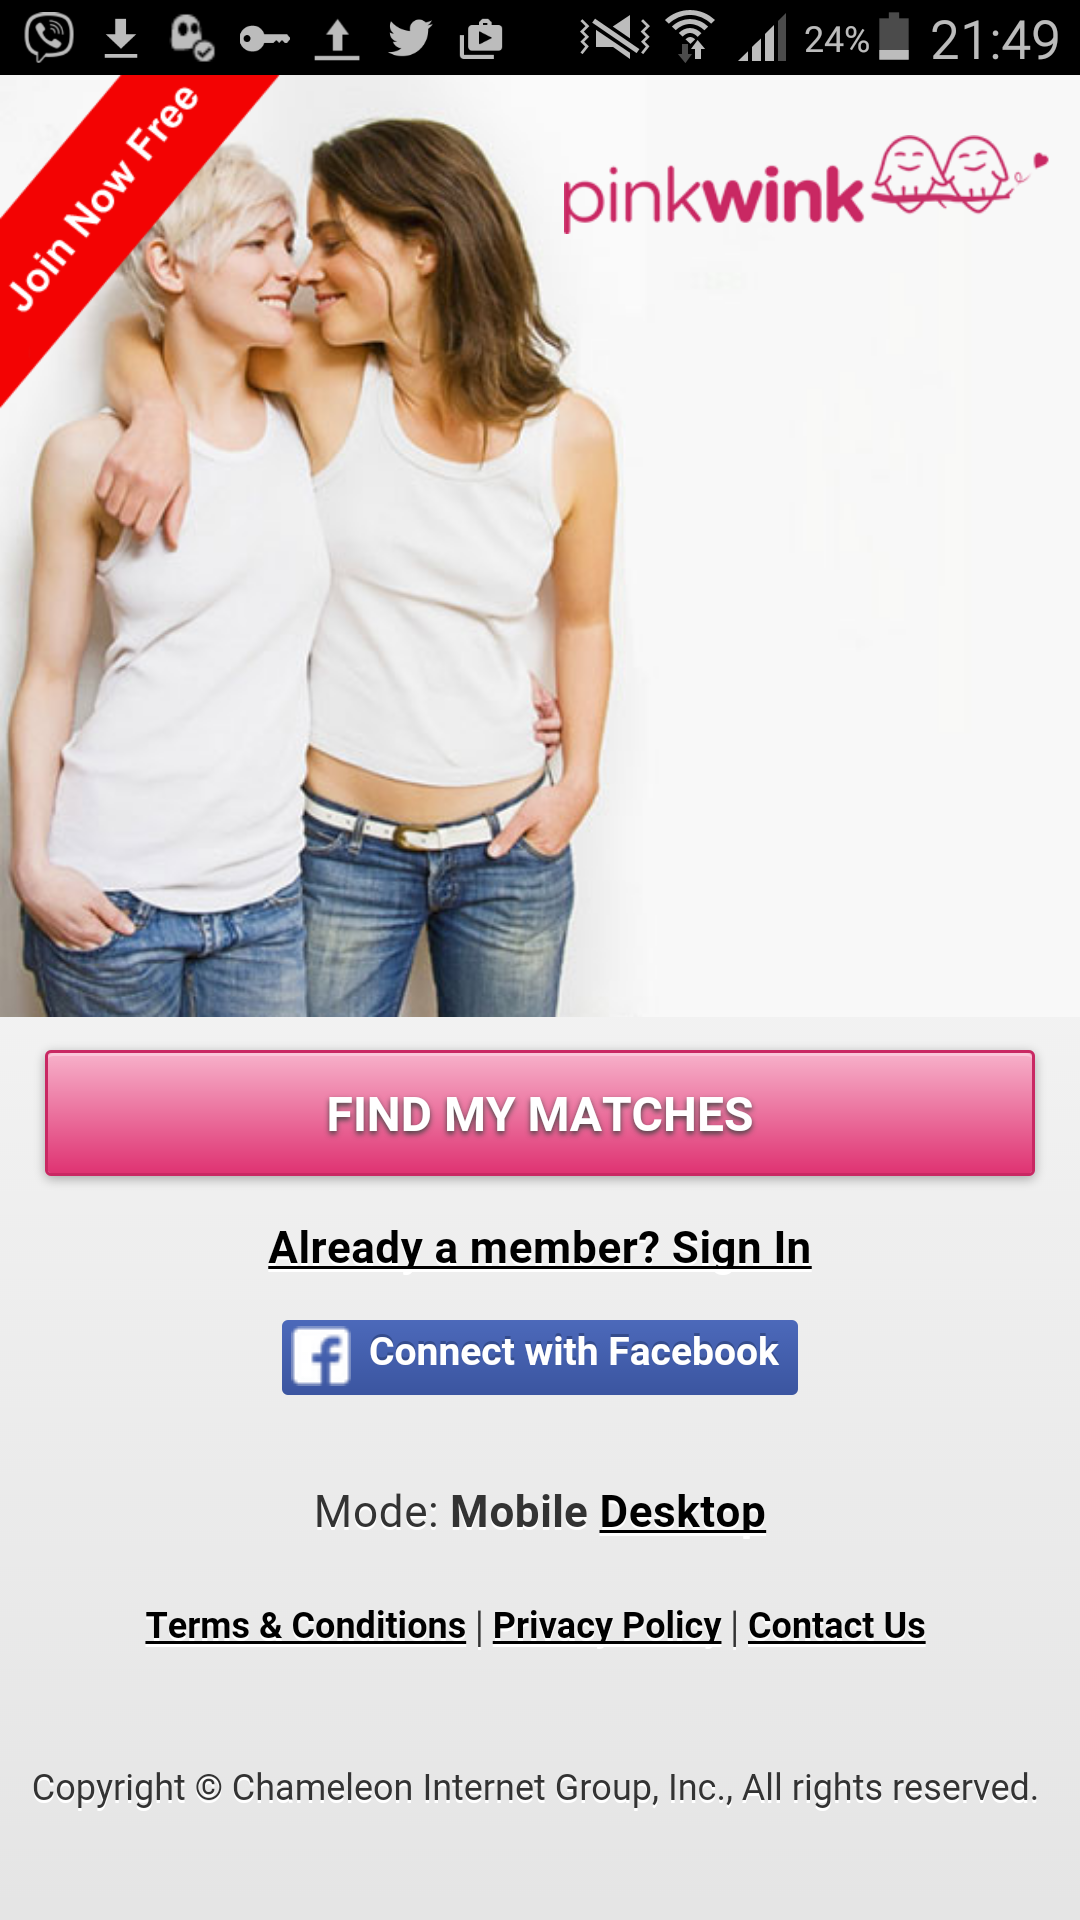 camas lesbian dating site Looking for women seeking women and lasting love connect with lesbian  singles dating and looking for lasting love on our site find out more here.